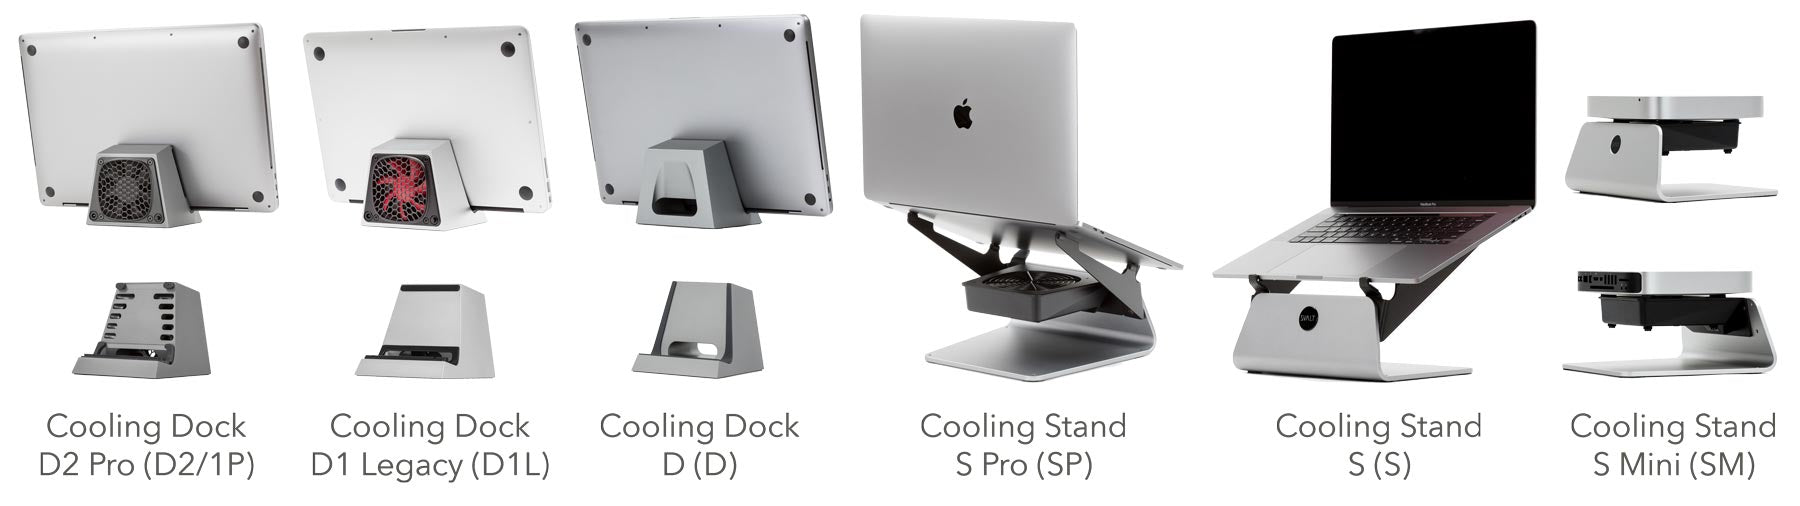 SVALT Cooling Dock model D, D2 Pro and D1 Pro with 16-inch MacBook Pro and SVALT Cooling Stand models S and S Pro with 16-inch MacBook Pro and model S Mini with Mac Mini